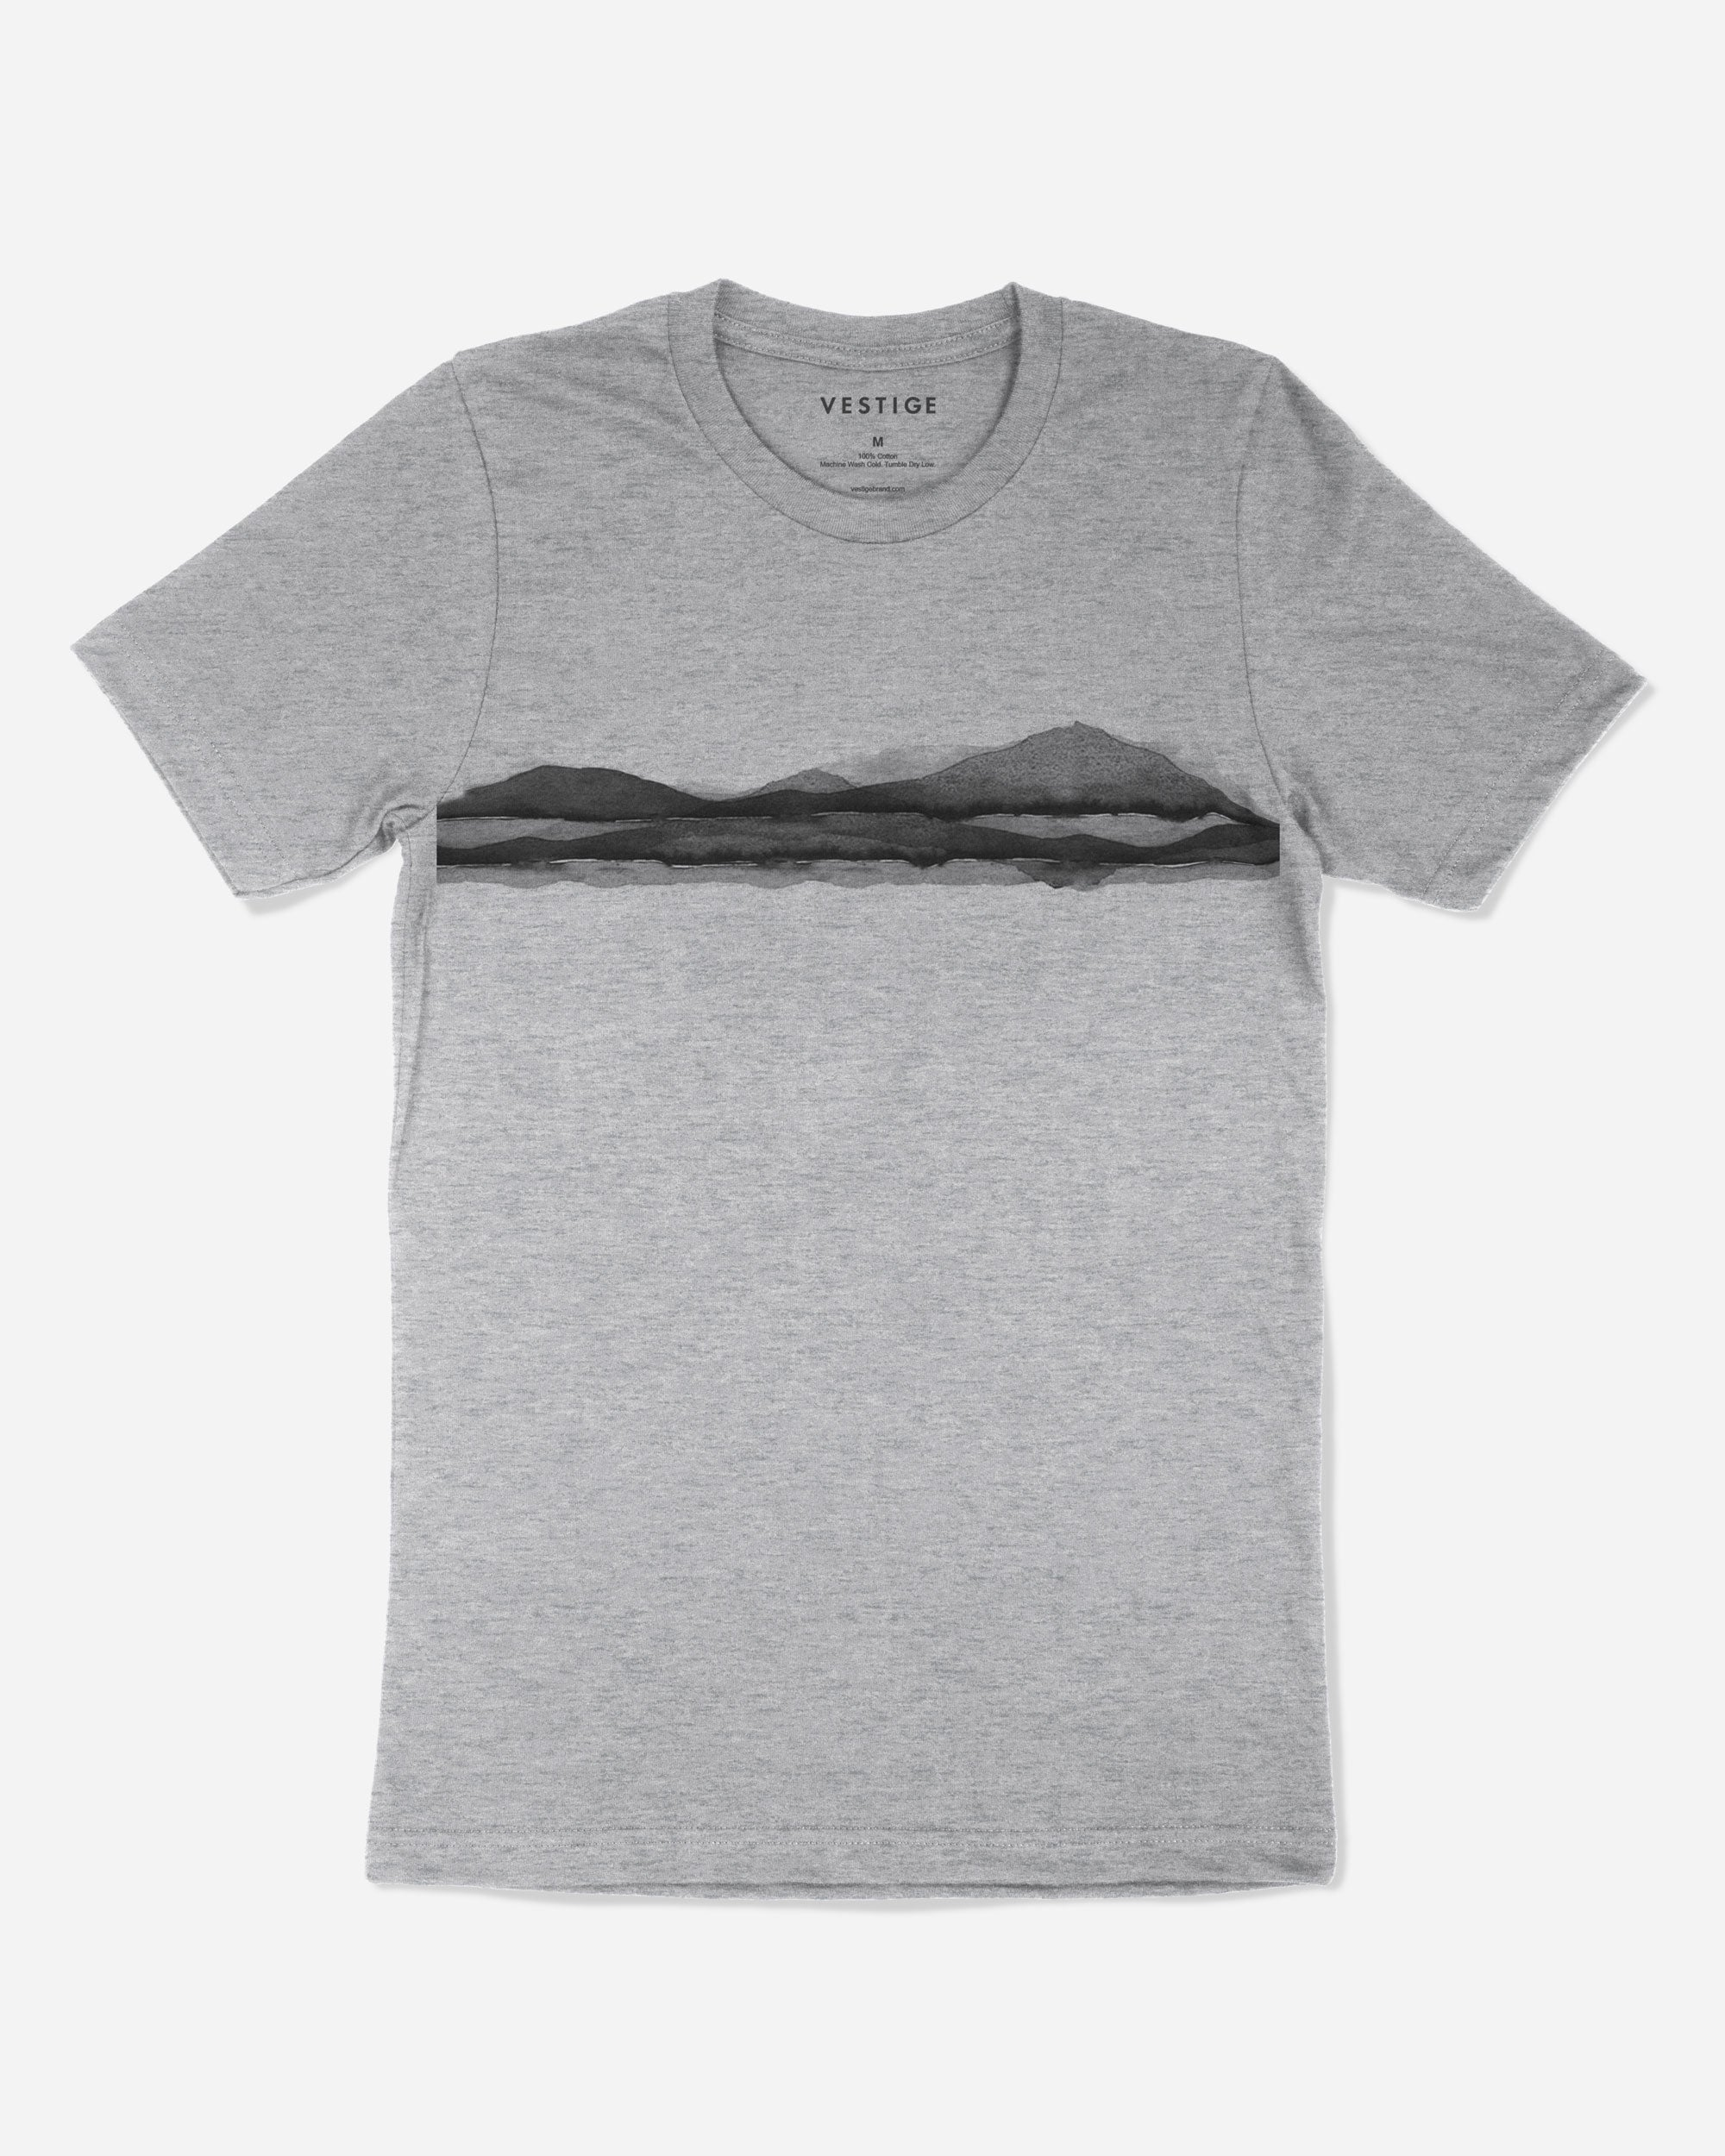 Vista T-Shirt, Light Grey